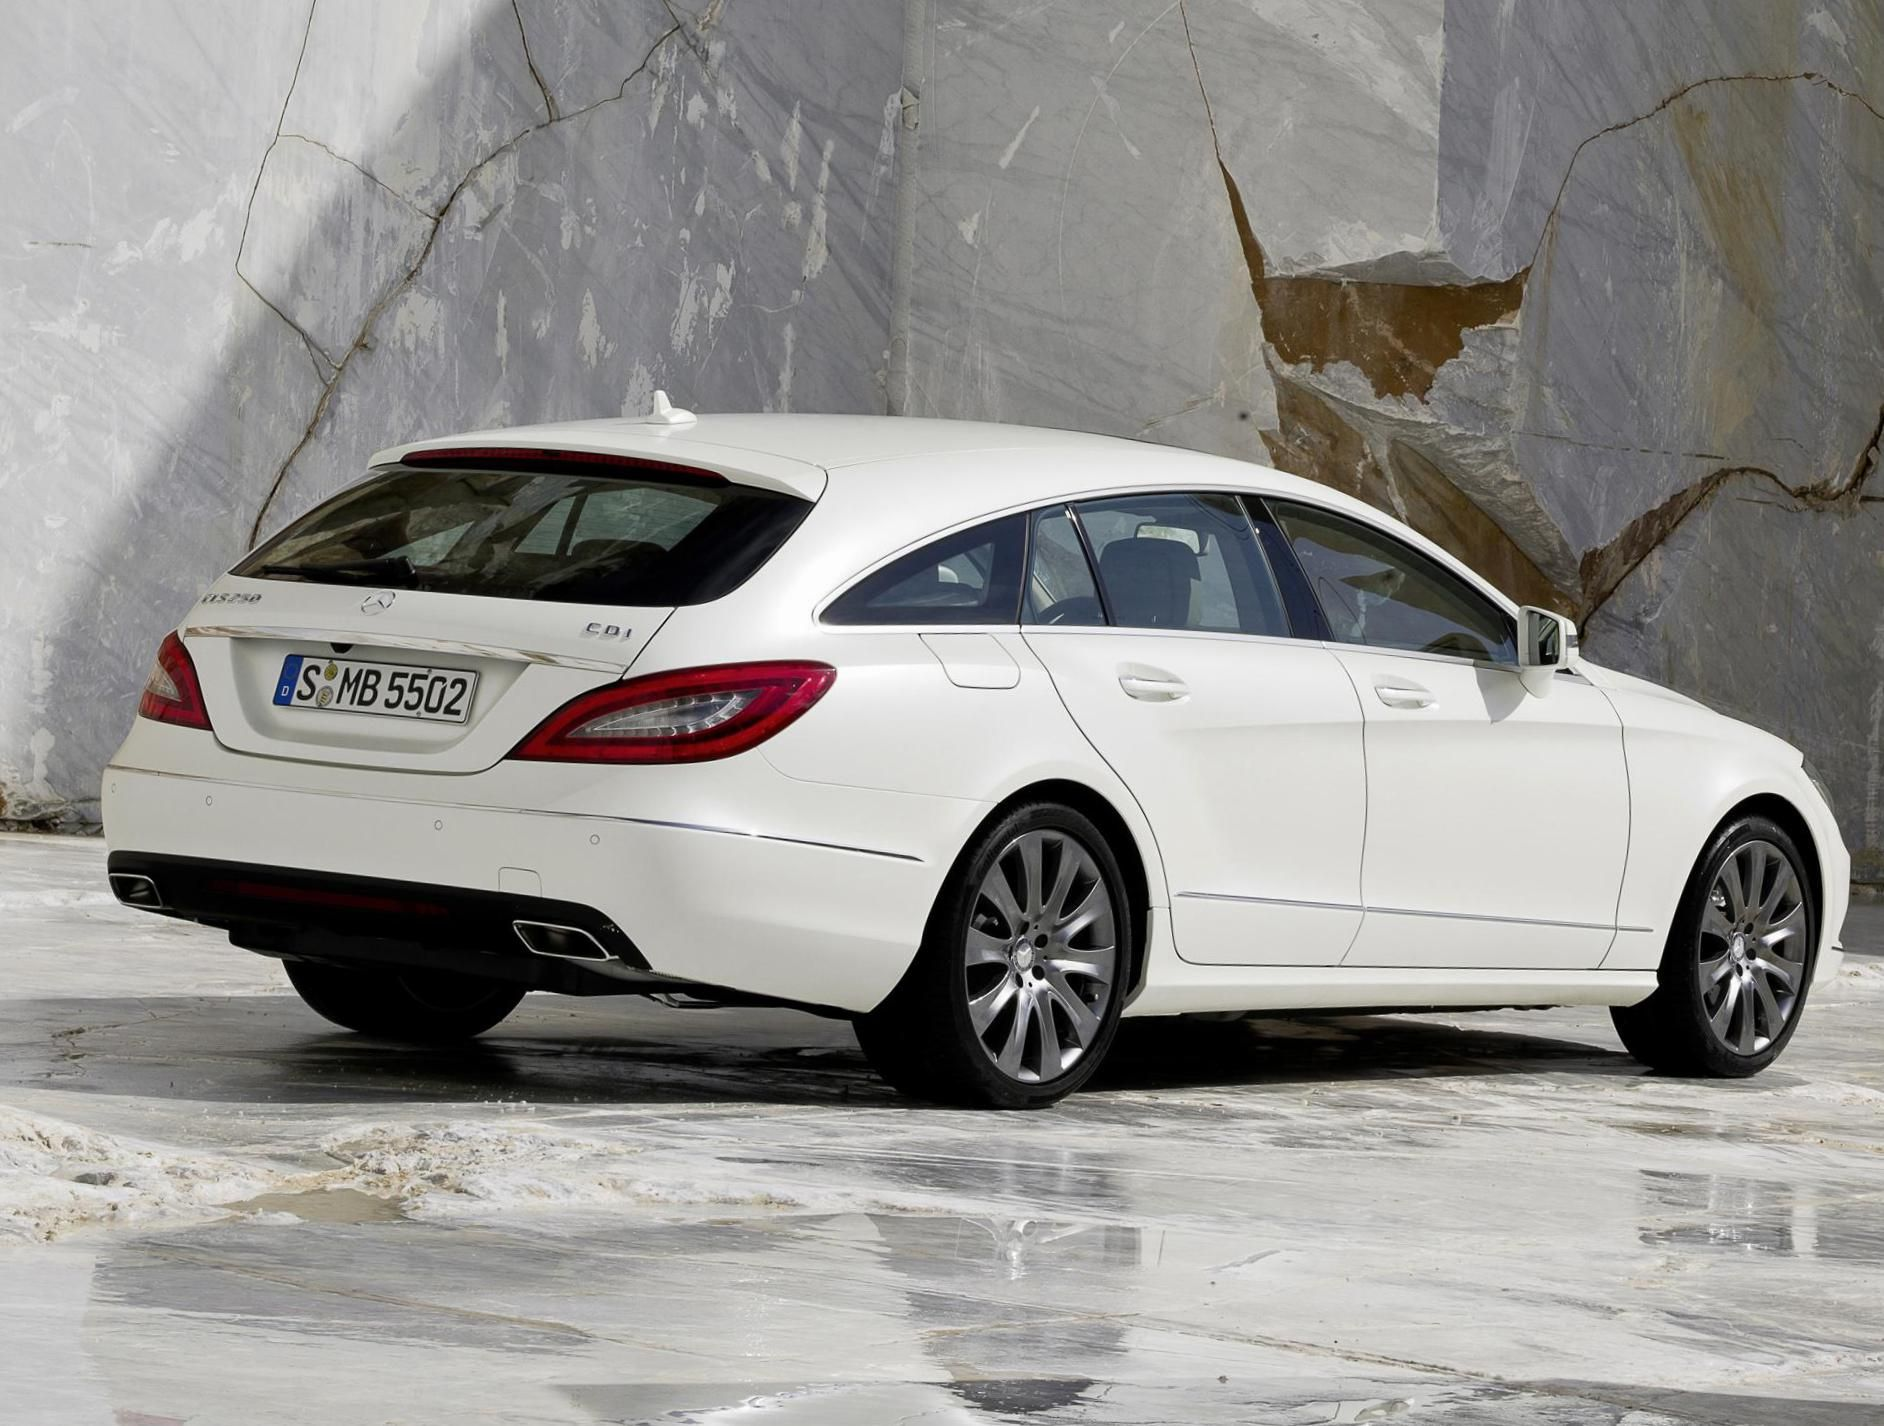 Mercedes Cls Shooting Brake X218 Photos And Specs Photo Mercedes Cls Shooting Brake X218 Price And 26 Mercedes Cls Mercedes Car Models Mercedes Benz Cls